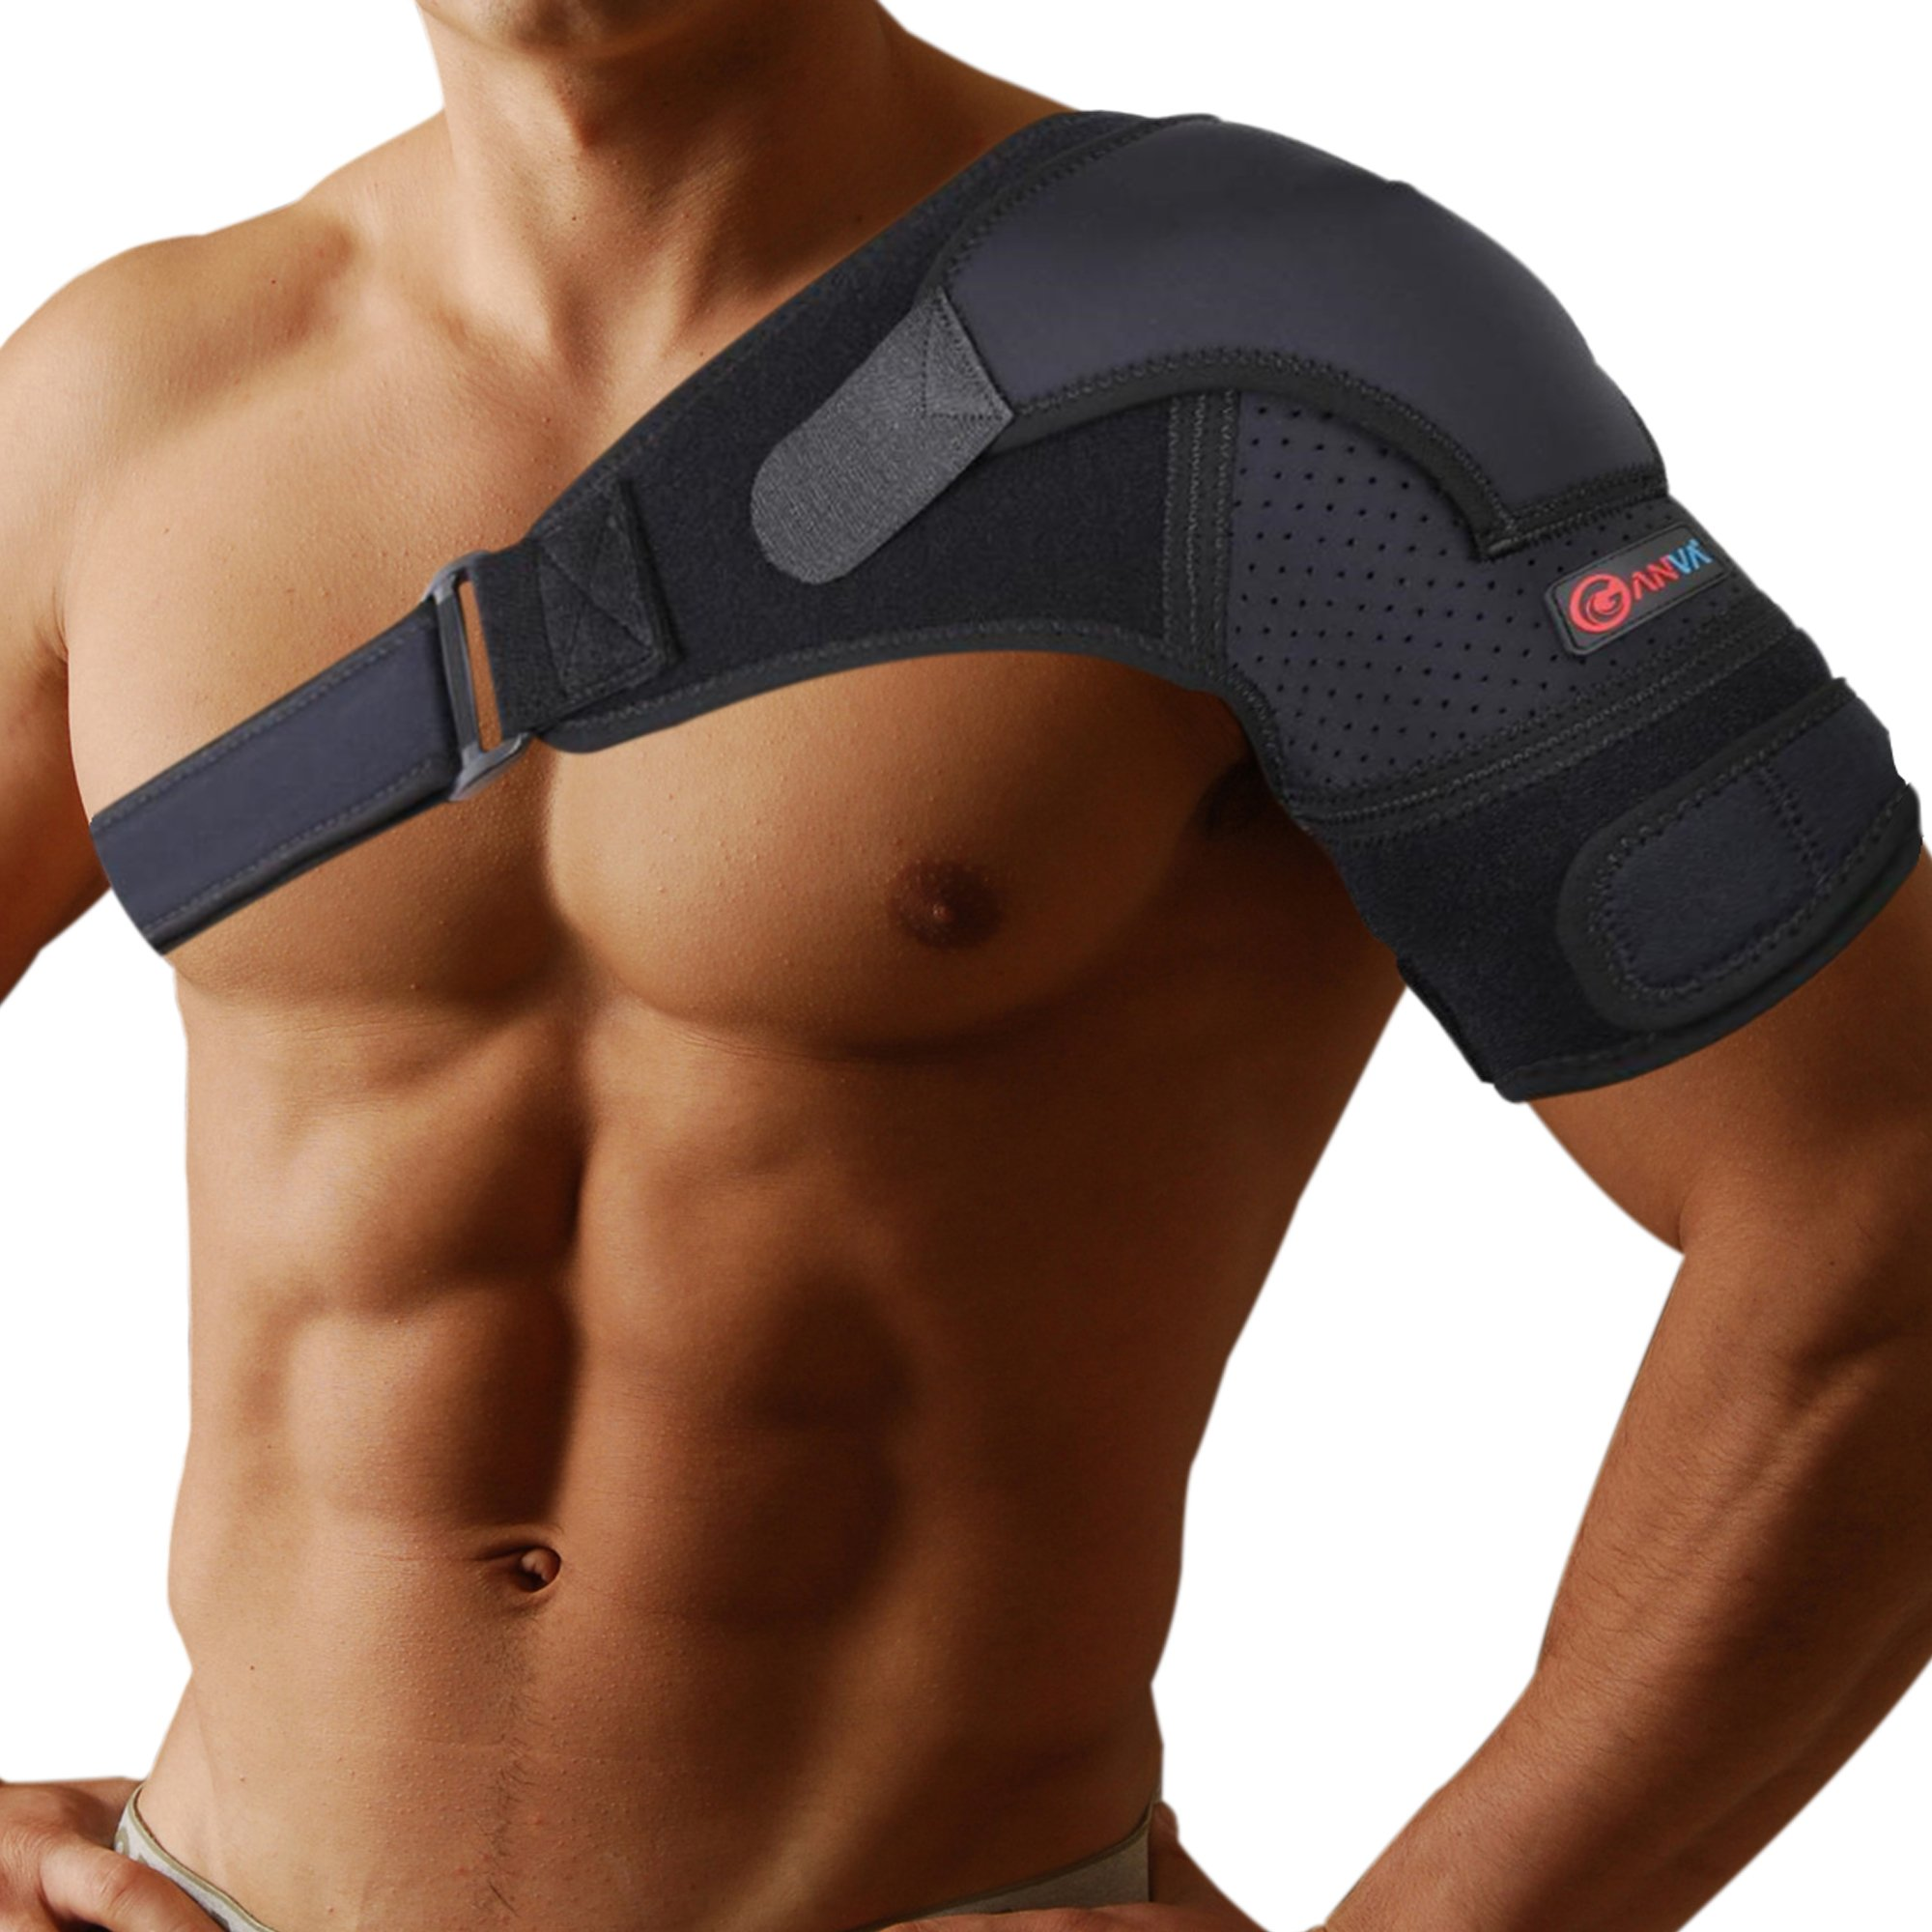 Shoulder Support Brace - Shoulder Brace Rotator Cuff | Dislocated AC Joint, Compression Sleeve Recovery, Shoulder Injuries, Adjustable Size Right and Left Arm for Men and Women by GANVA